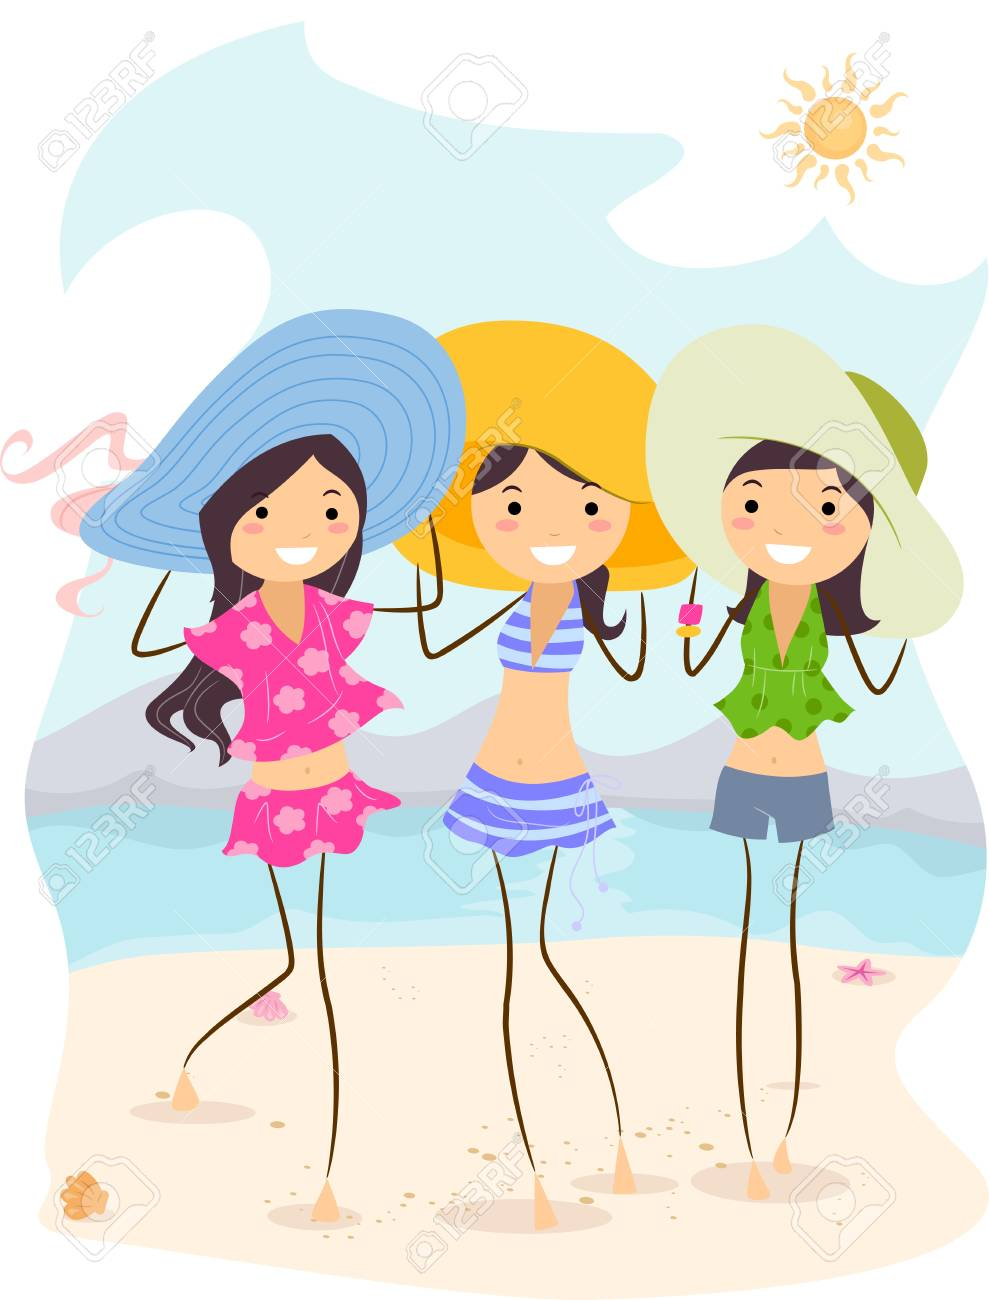 Illustration of Girls Wearing Different Summer Outfits Stock Photo - 9915258